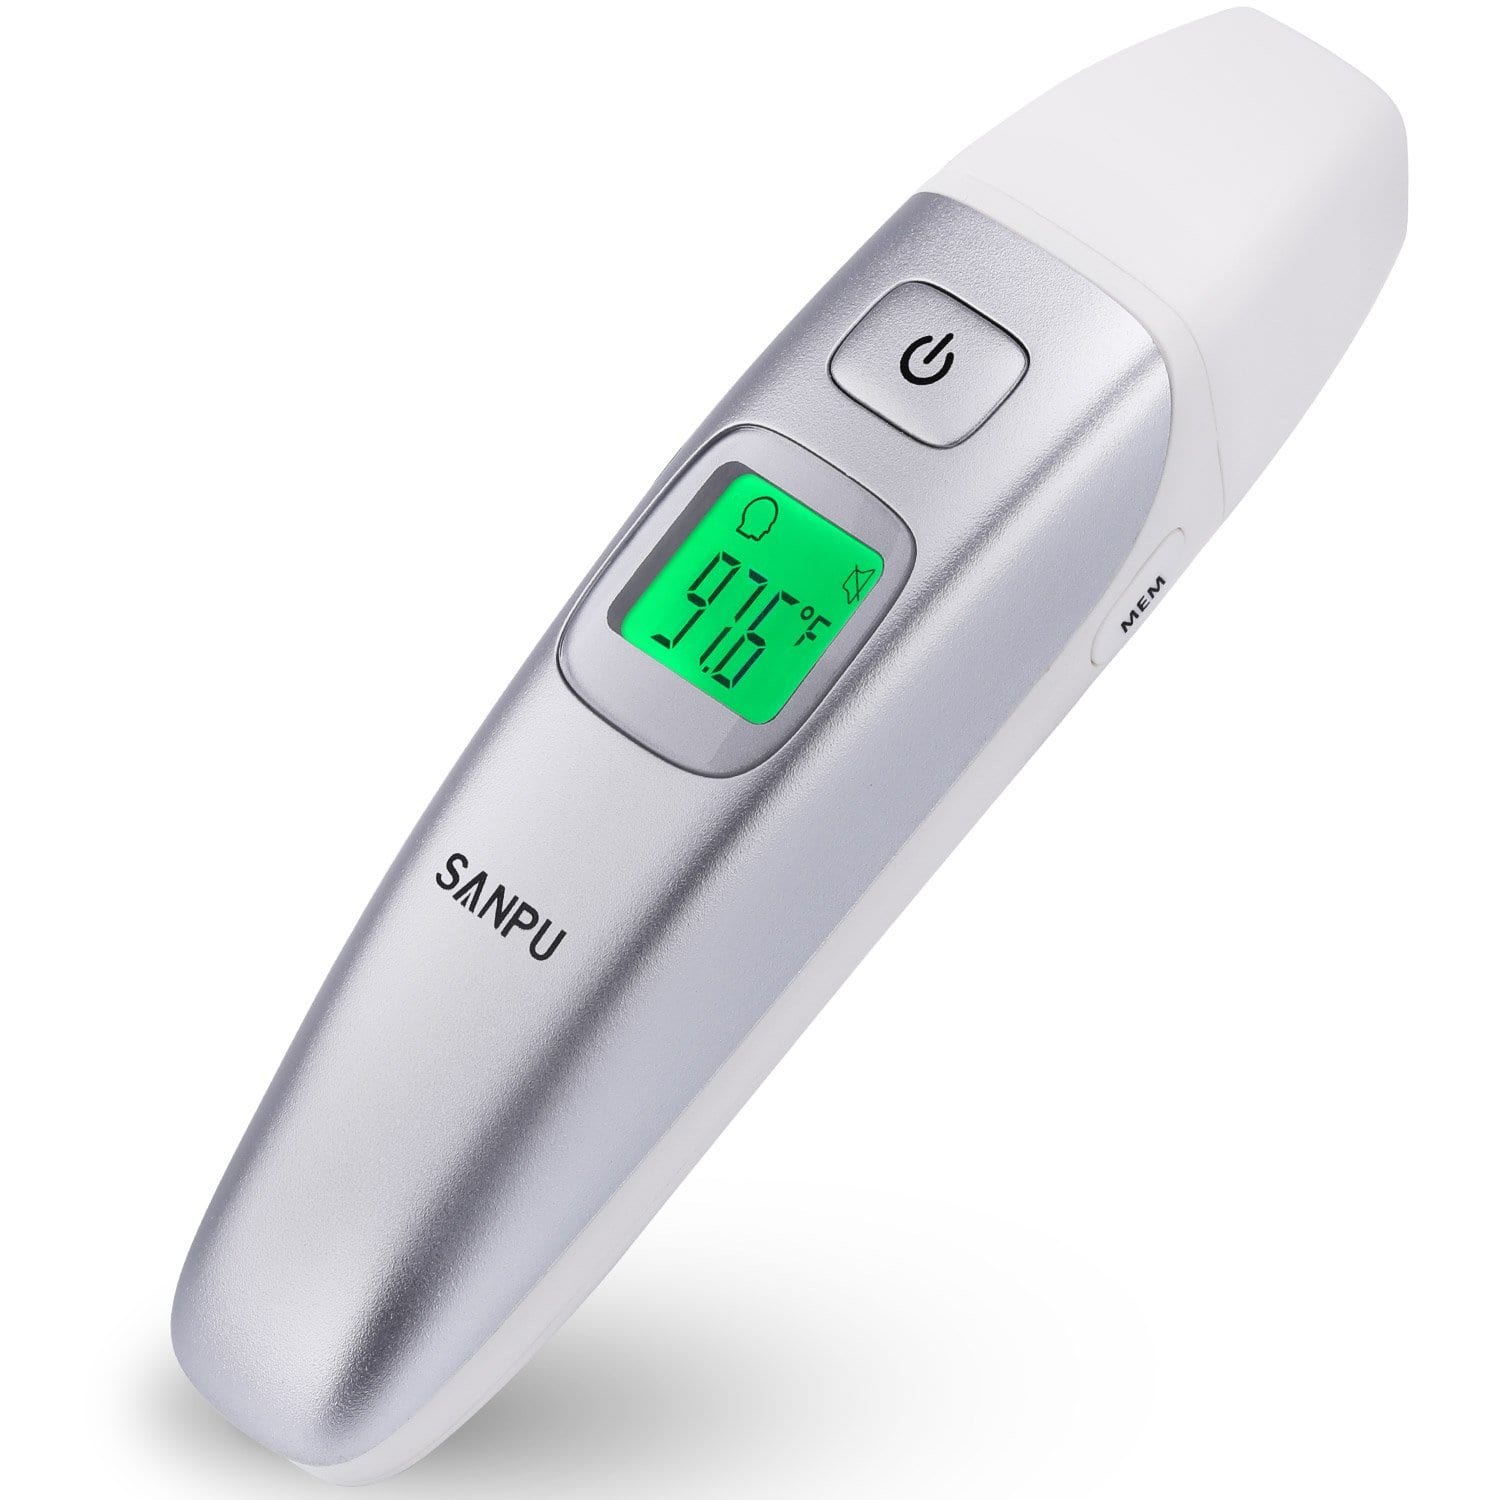 SANPU Infrared Forehead and Ear Thermometer $15 + free s/h